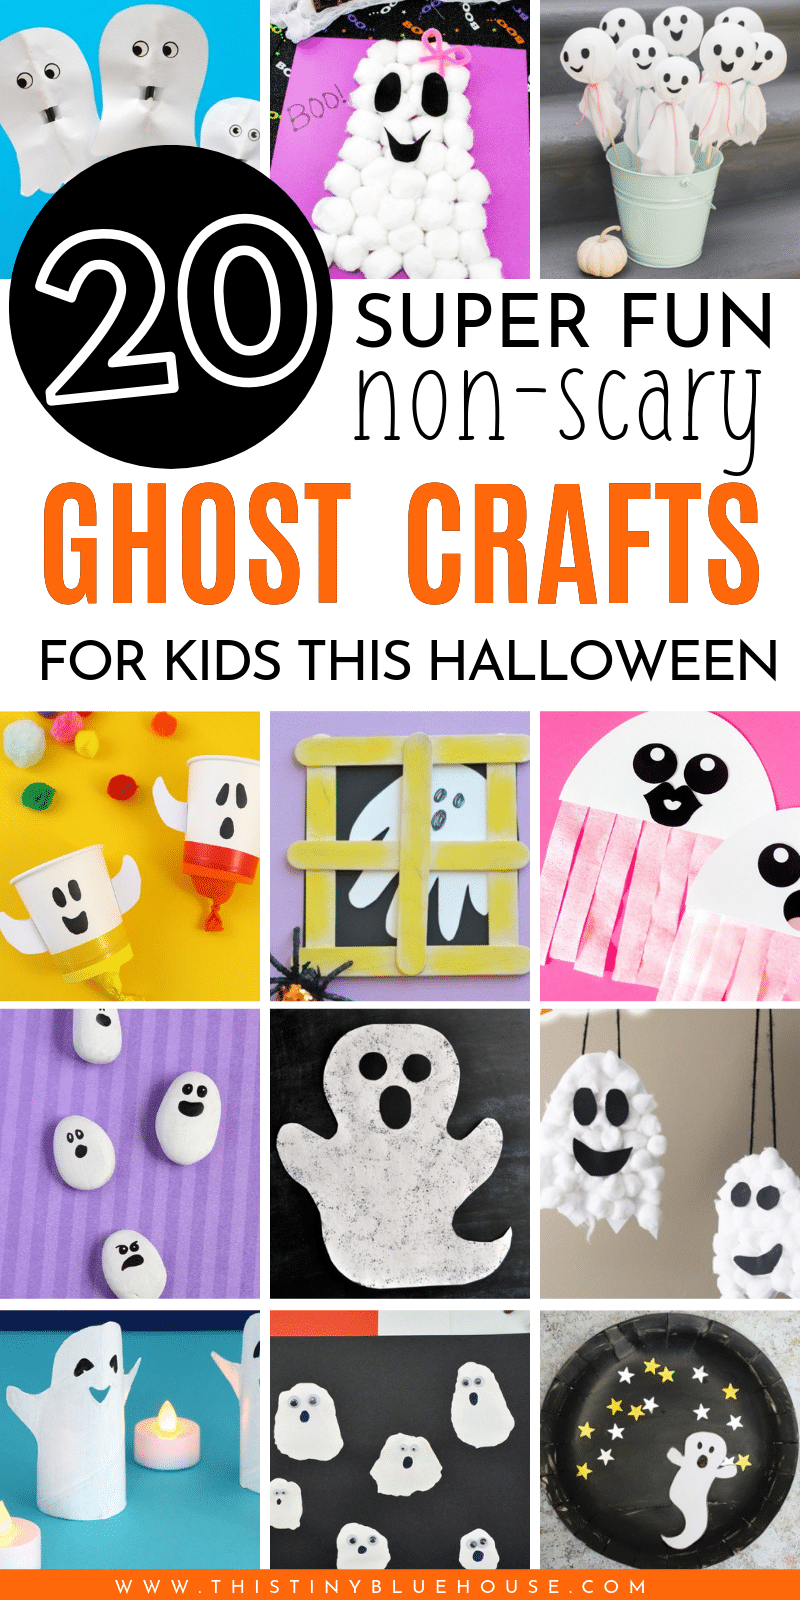 here are 30 best cute Halloween ghost crafts for kids that are easy to make and are guaranteed to provide hours of fun for kids.#halloweencrafts #DIYhalloweencrafts #easycraftsforhalloween #besthalloweencraftsforkids #ghostcraftsforkids